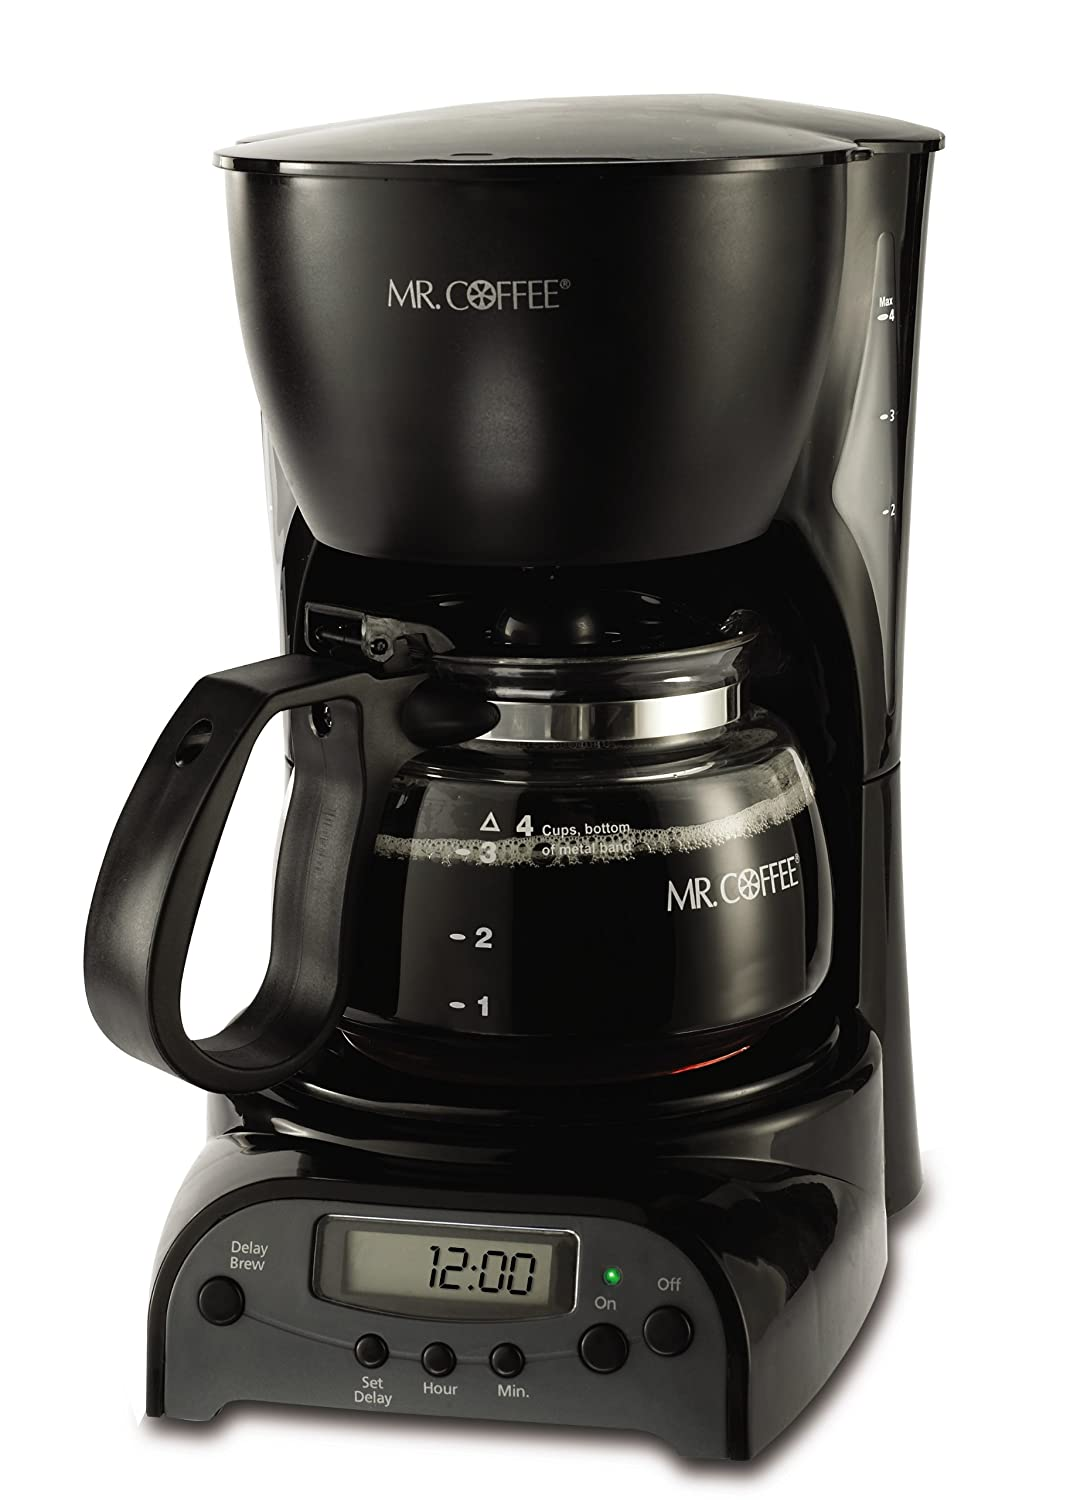 Coffee Maker Instructions : Free download Continental Coffee Maker Manual programs - dragonprogramy